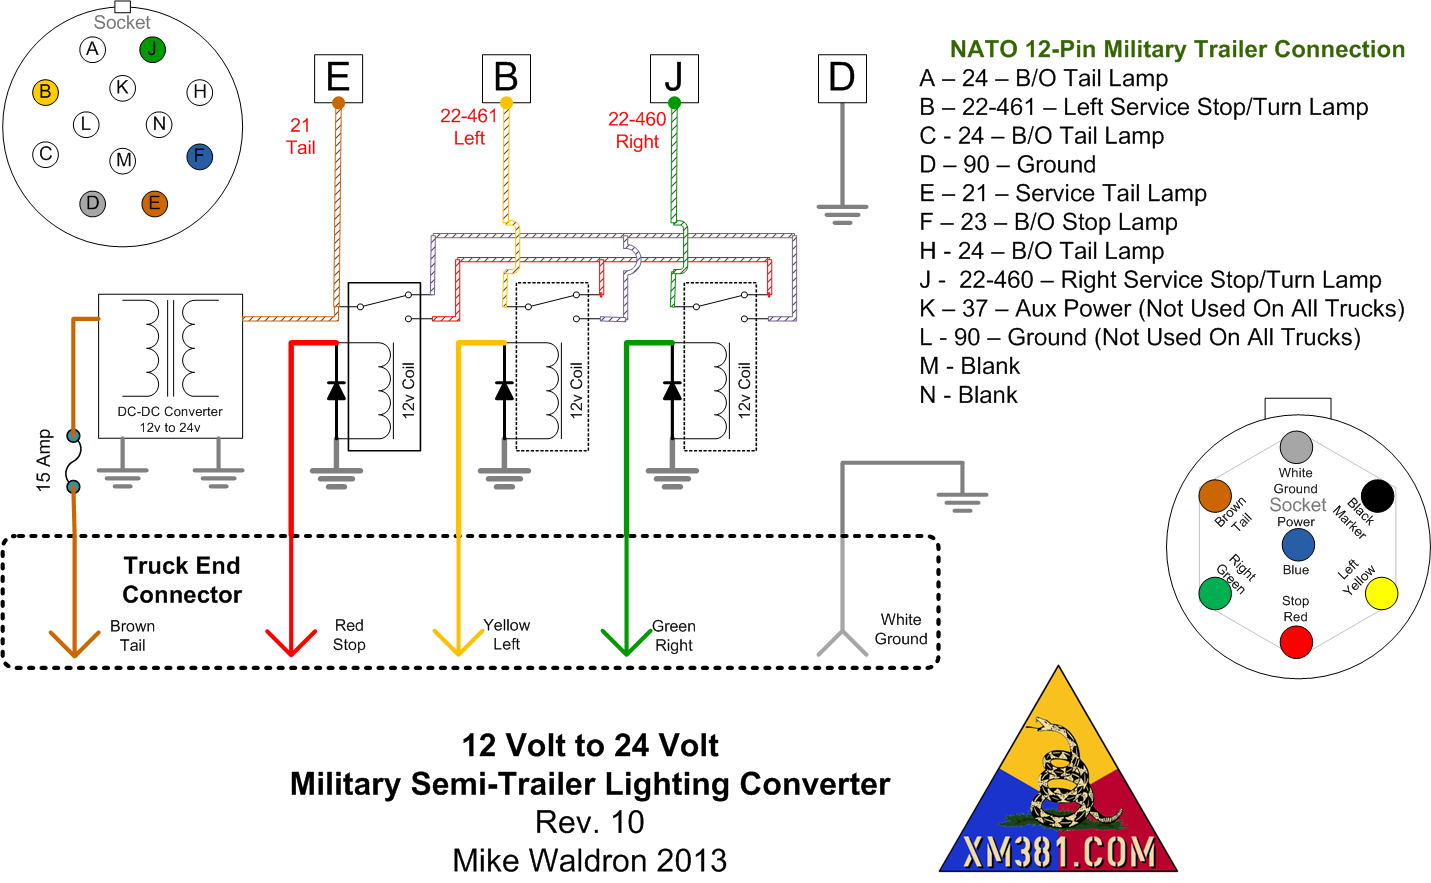 XM381 - 12 Volt Civllian Truck to 24 Volt Military Trailer Lighting ...